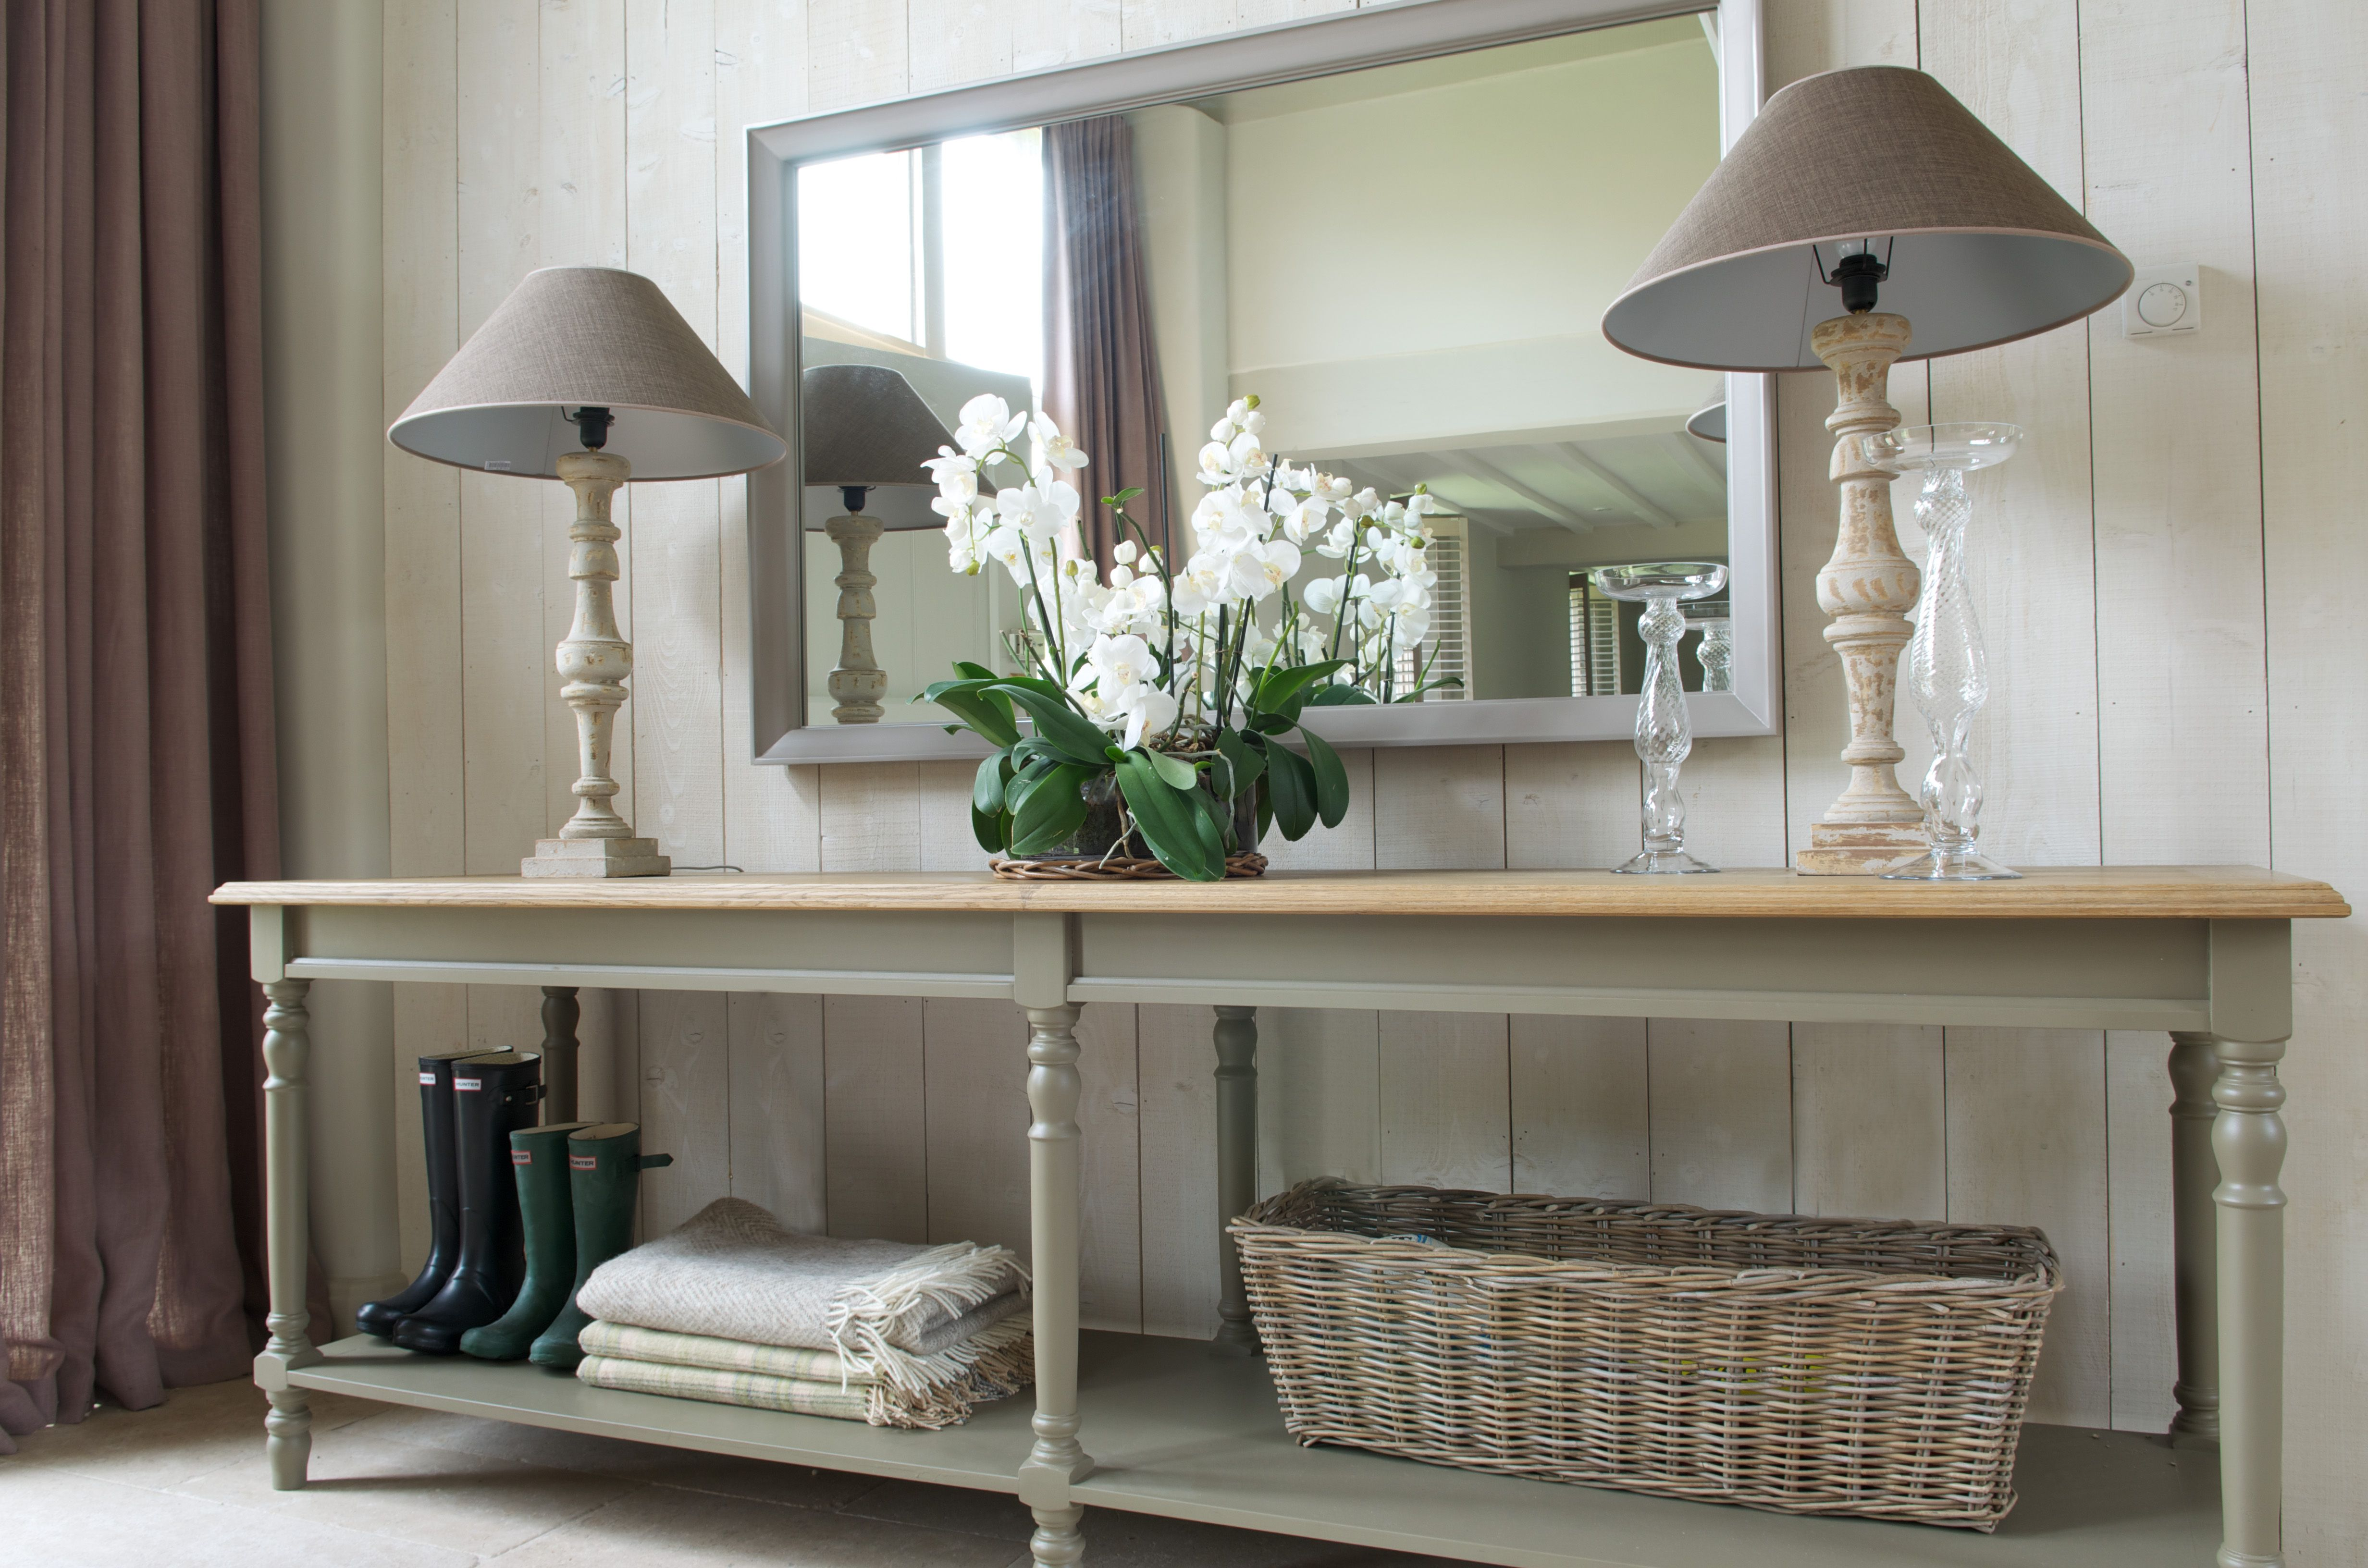 elegant country console table oxfordshire barn sims. Black Bedroom Furniture Sets. Home Design Ideas